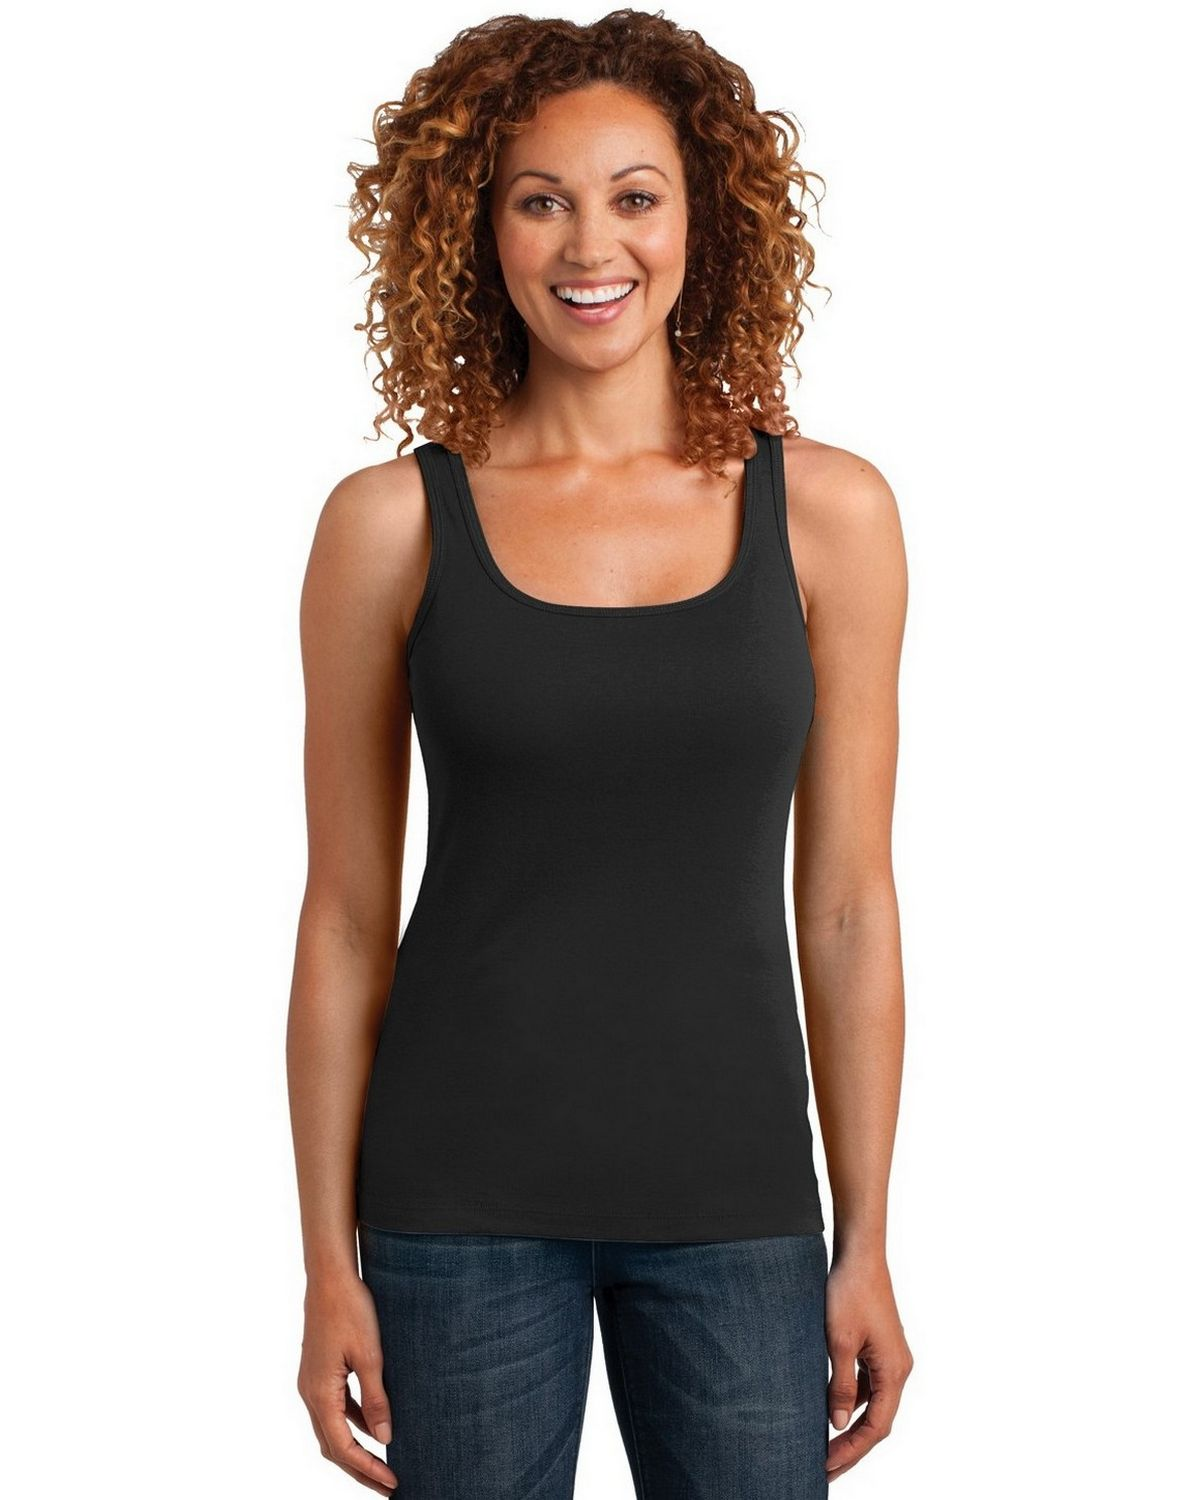 District Made DM403 Mini Rib Racerback Tank - Black - L DM403